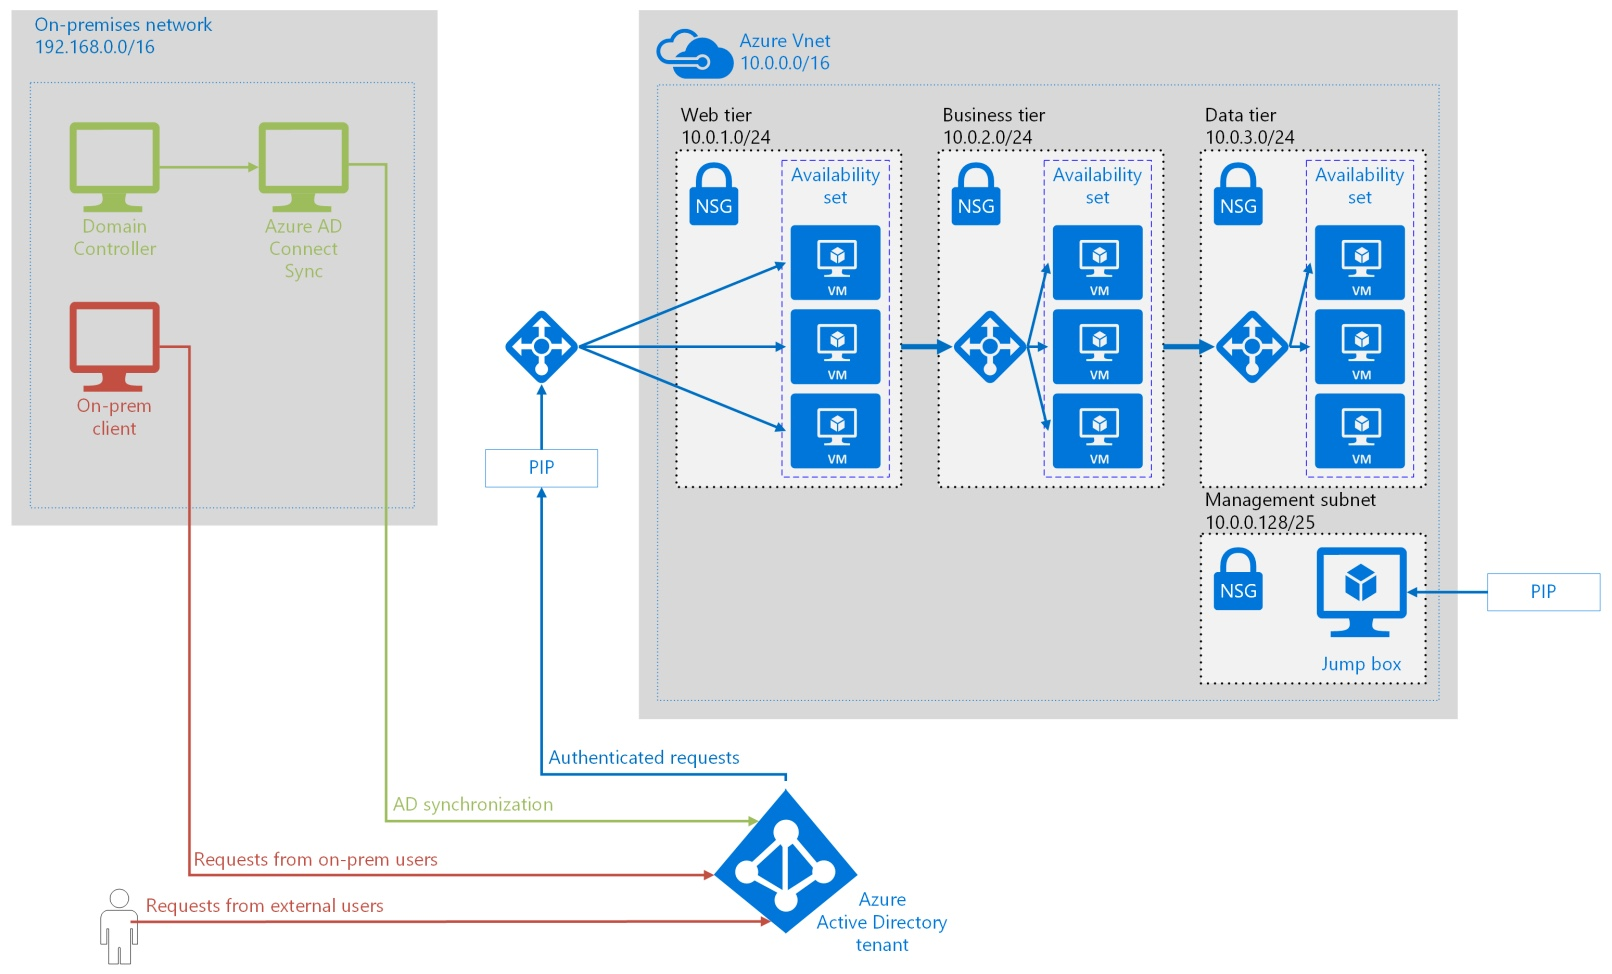 Azure Reference Architecture and best practices – Integrate